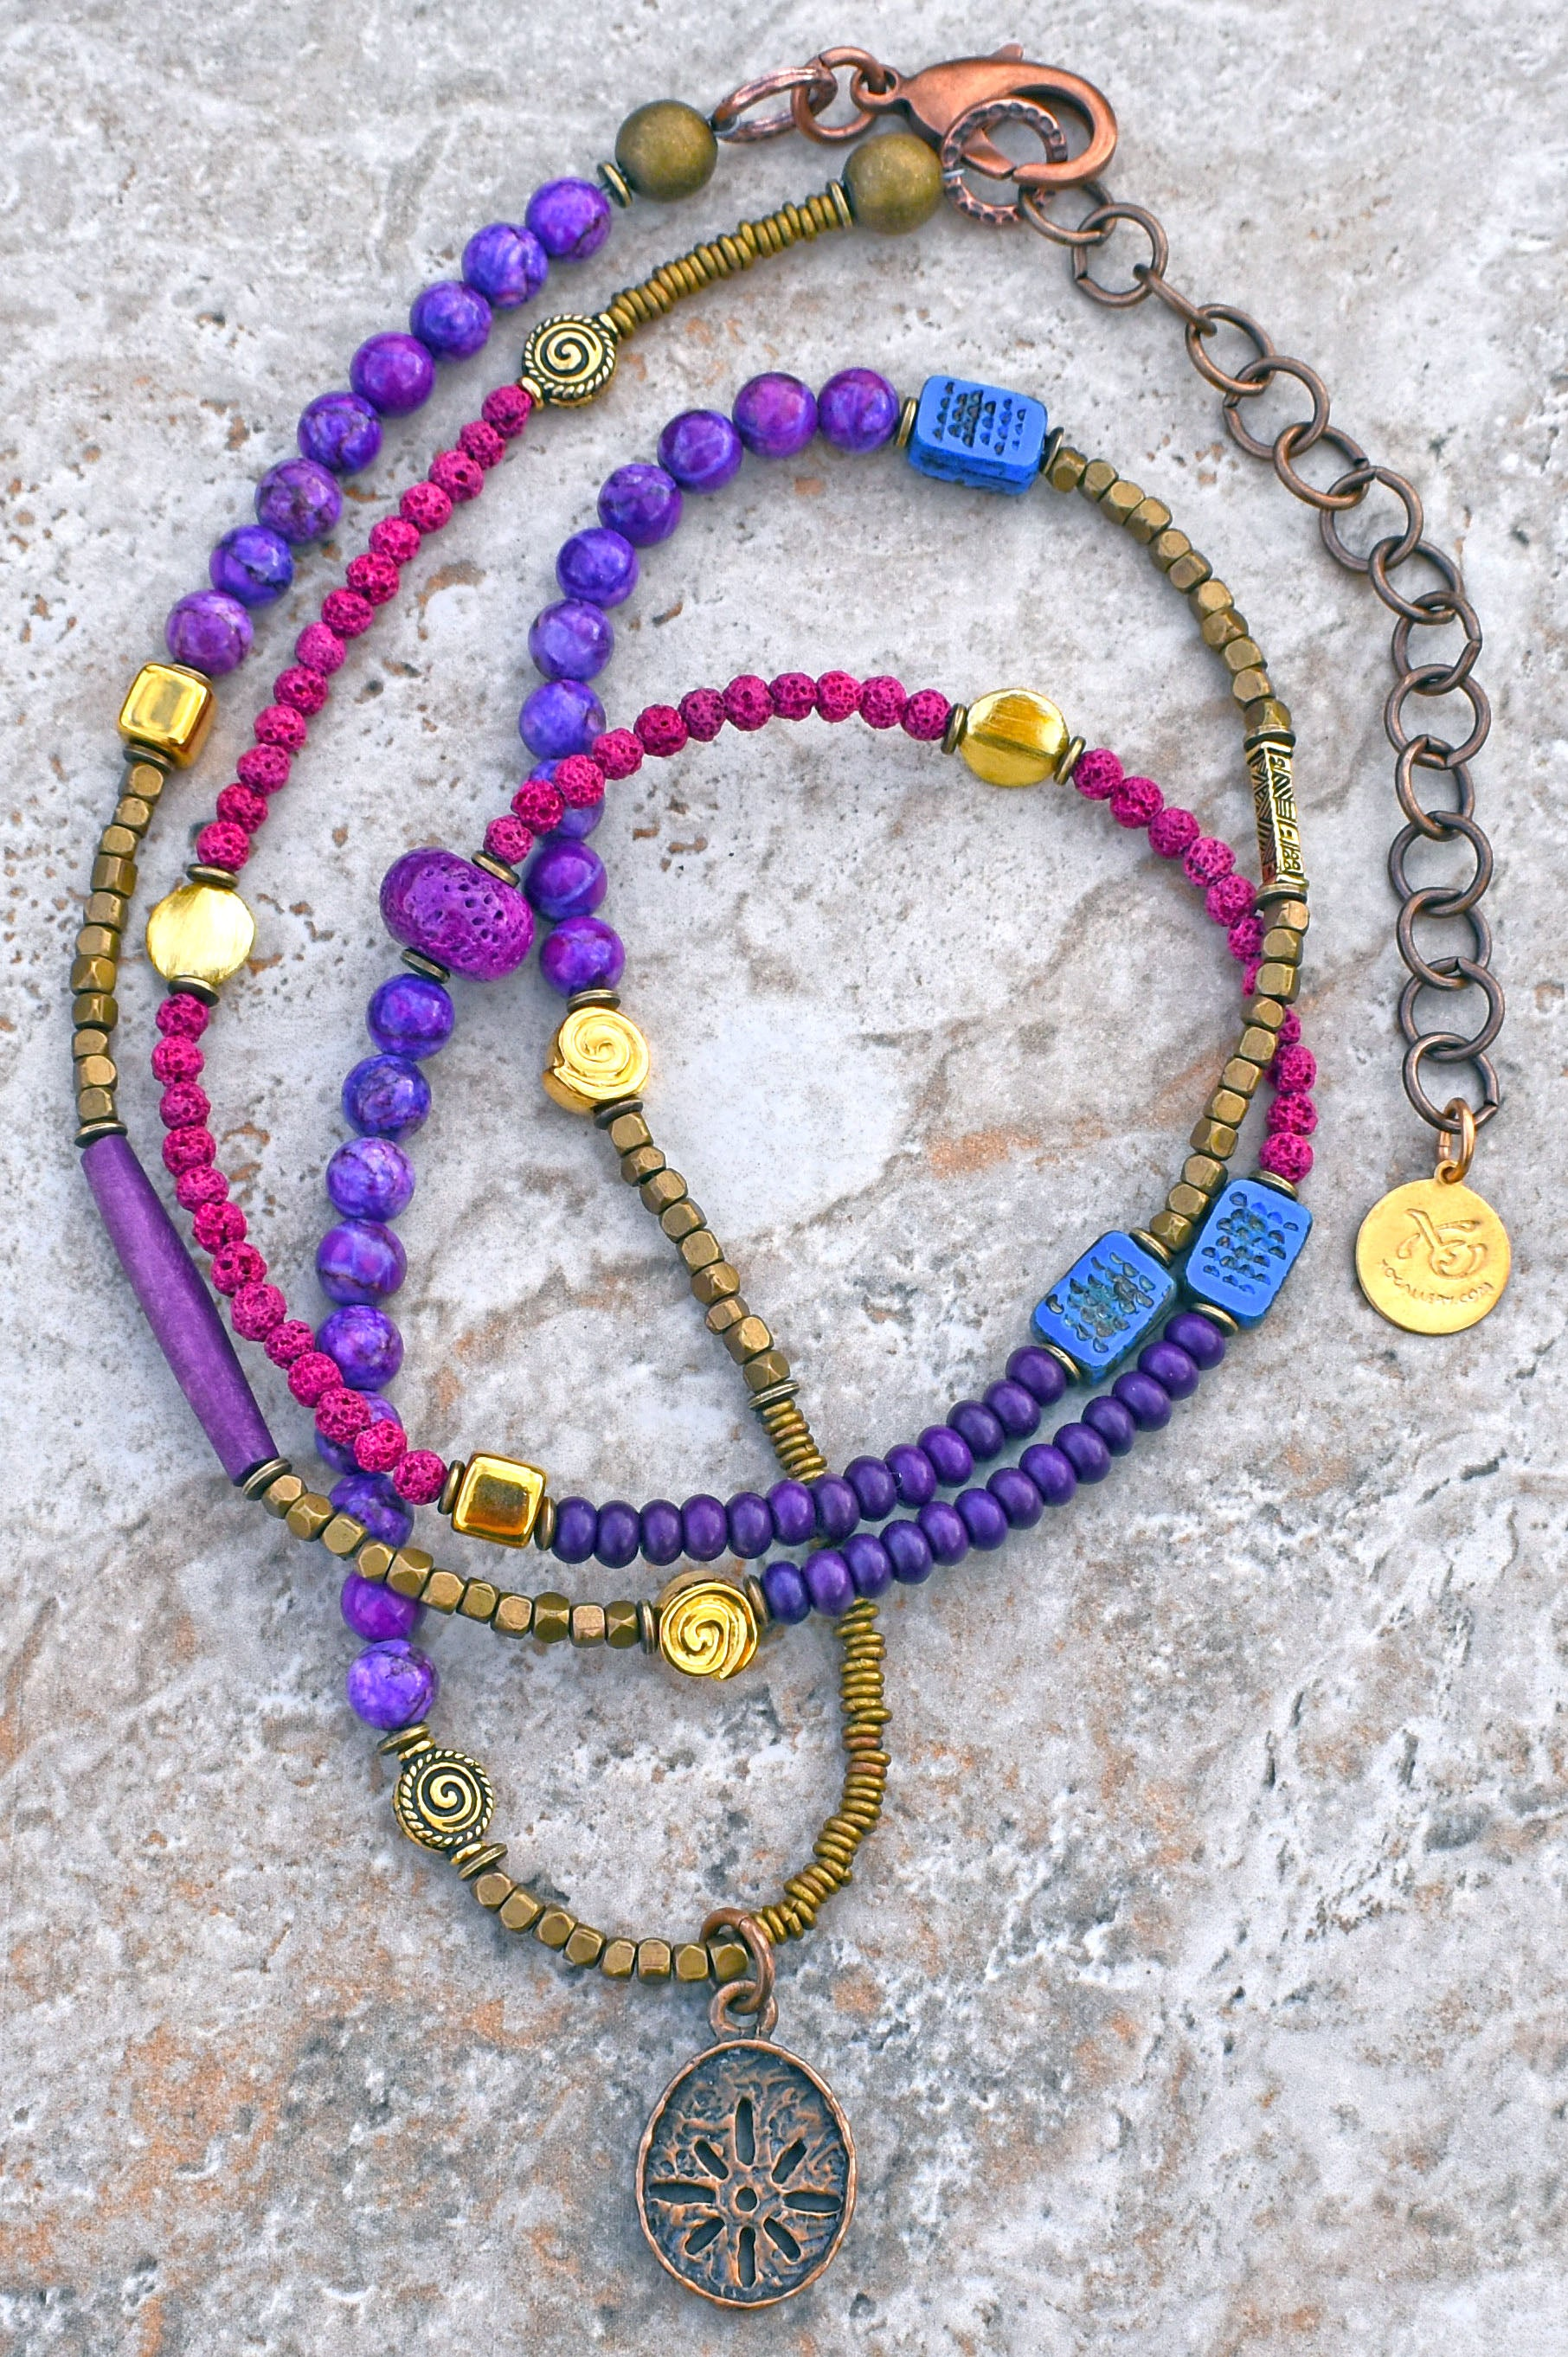 Custom Long Bohemian Mixed Purples, Fuchsia and Brass Sun Coin Necklace